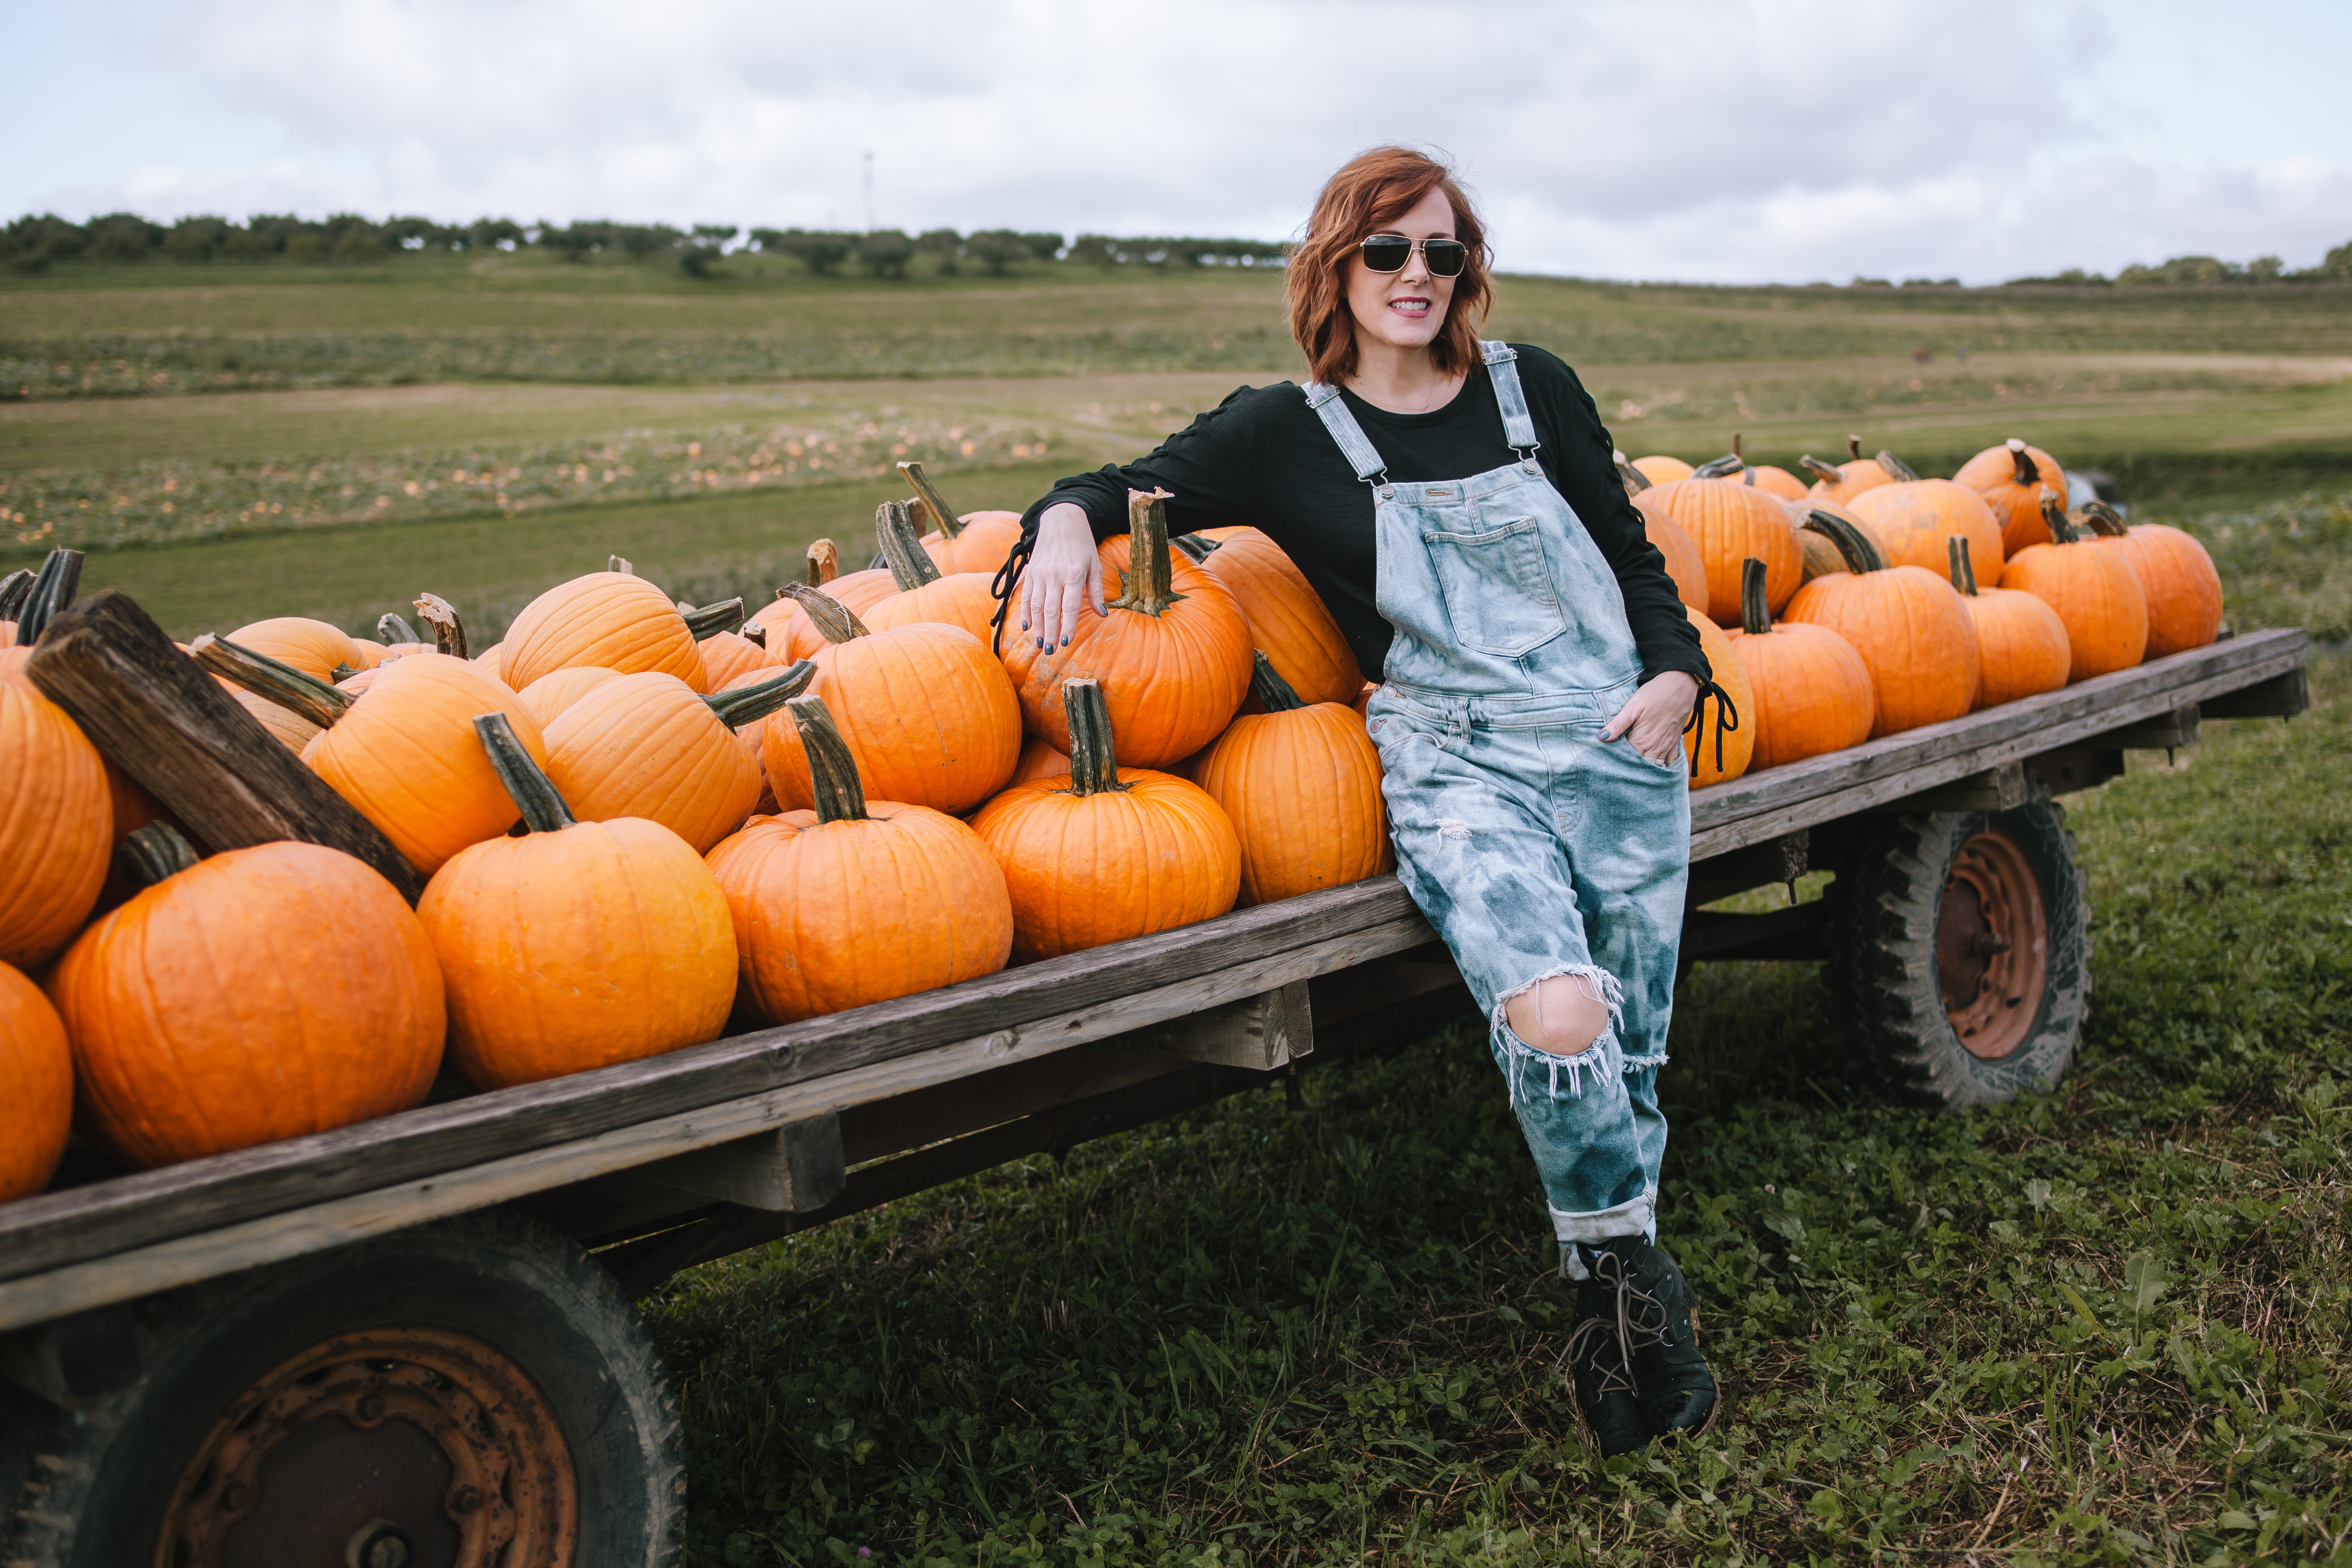 The Most Sincere Pumpkin Patch